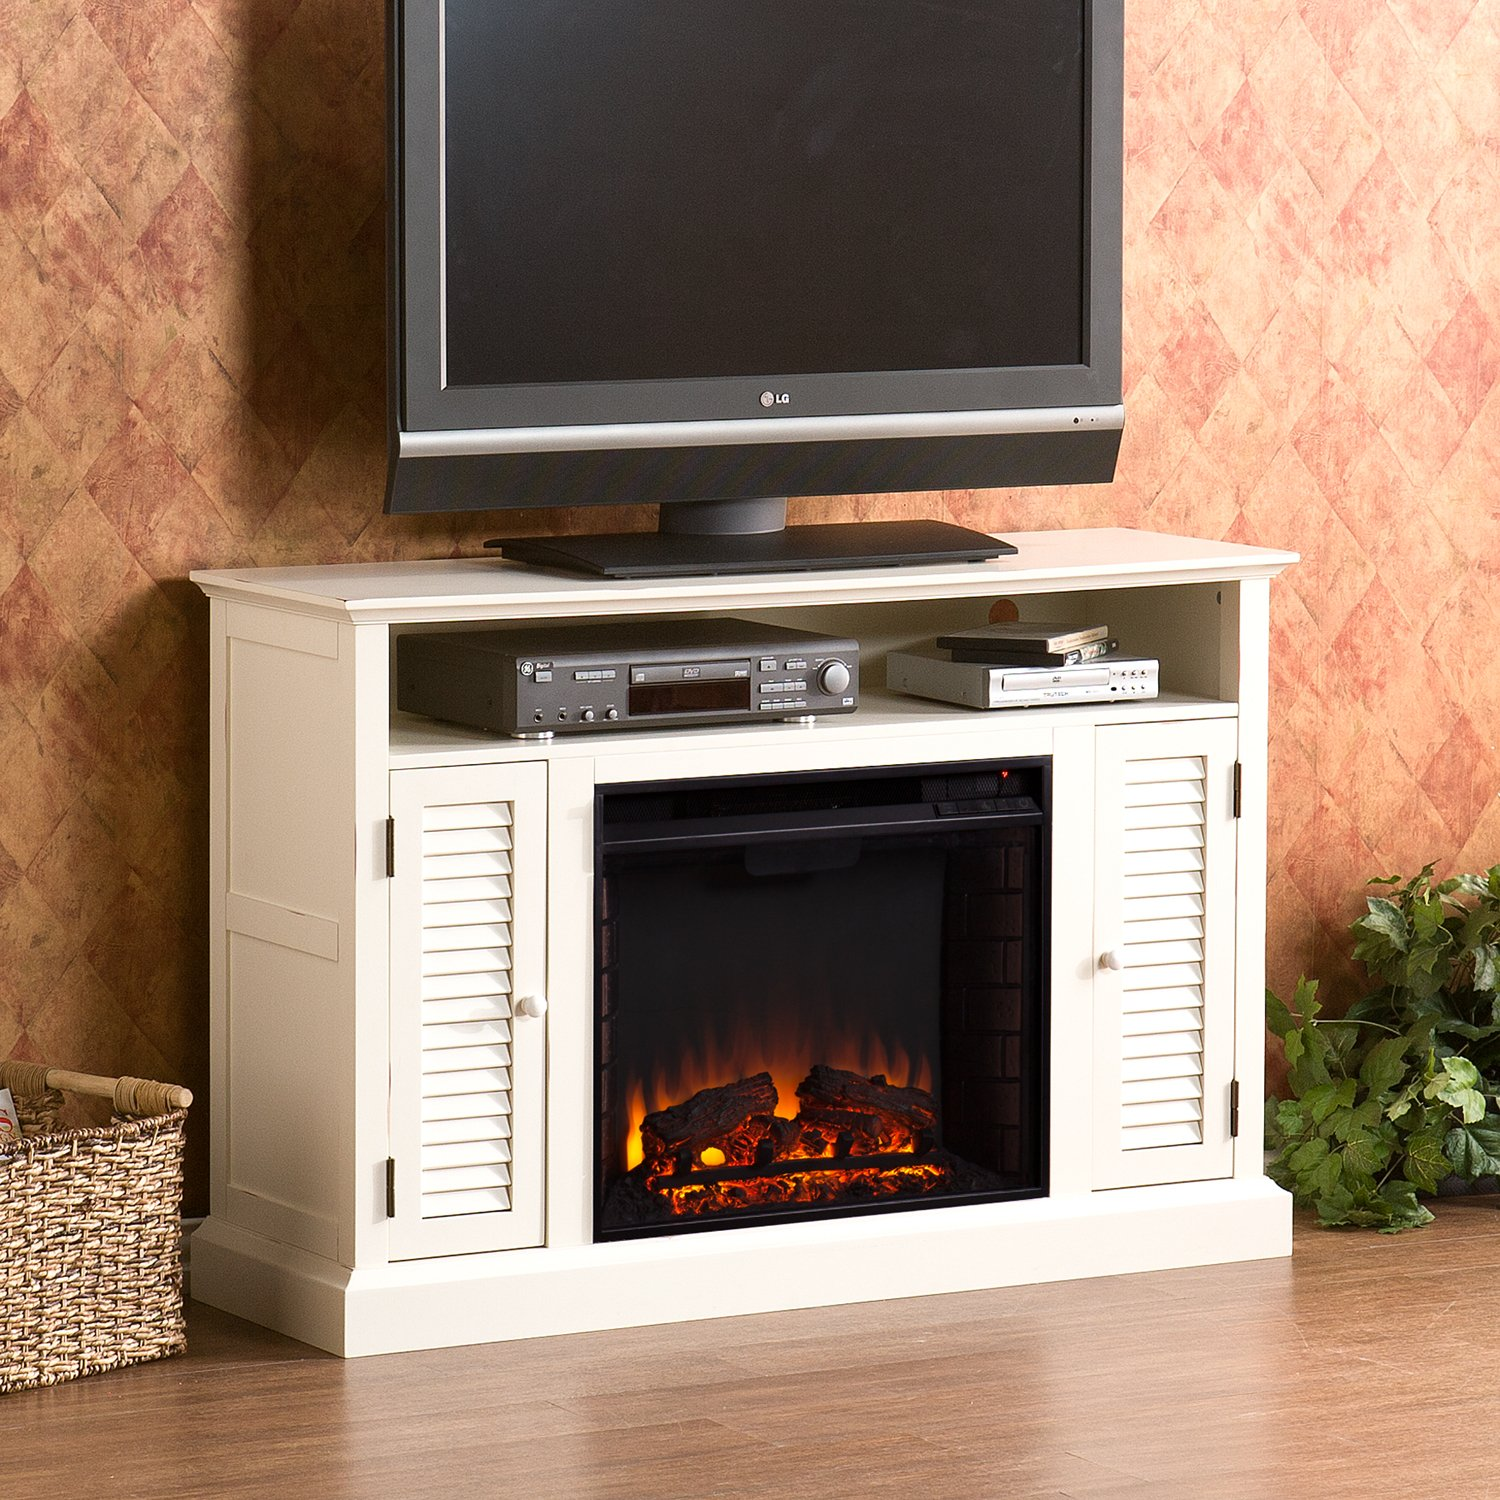 electric fireplace heater with stoves place and clearance decoration fireplaces tv white storage whalen direct corner infrared media fire stand small console